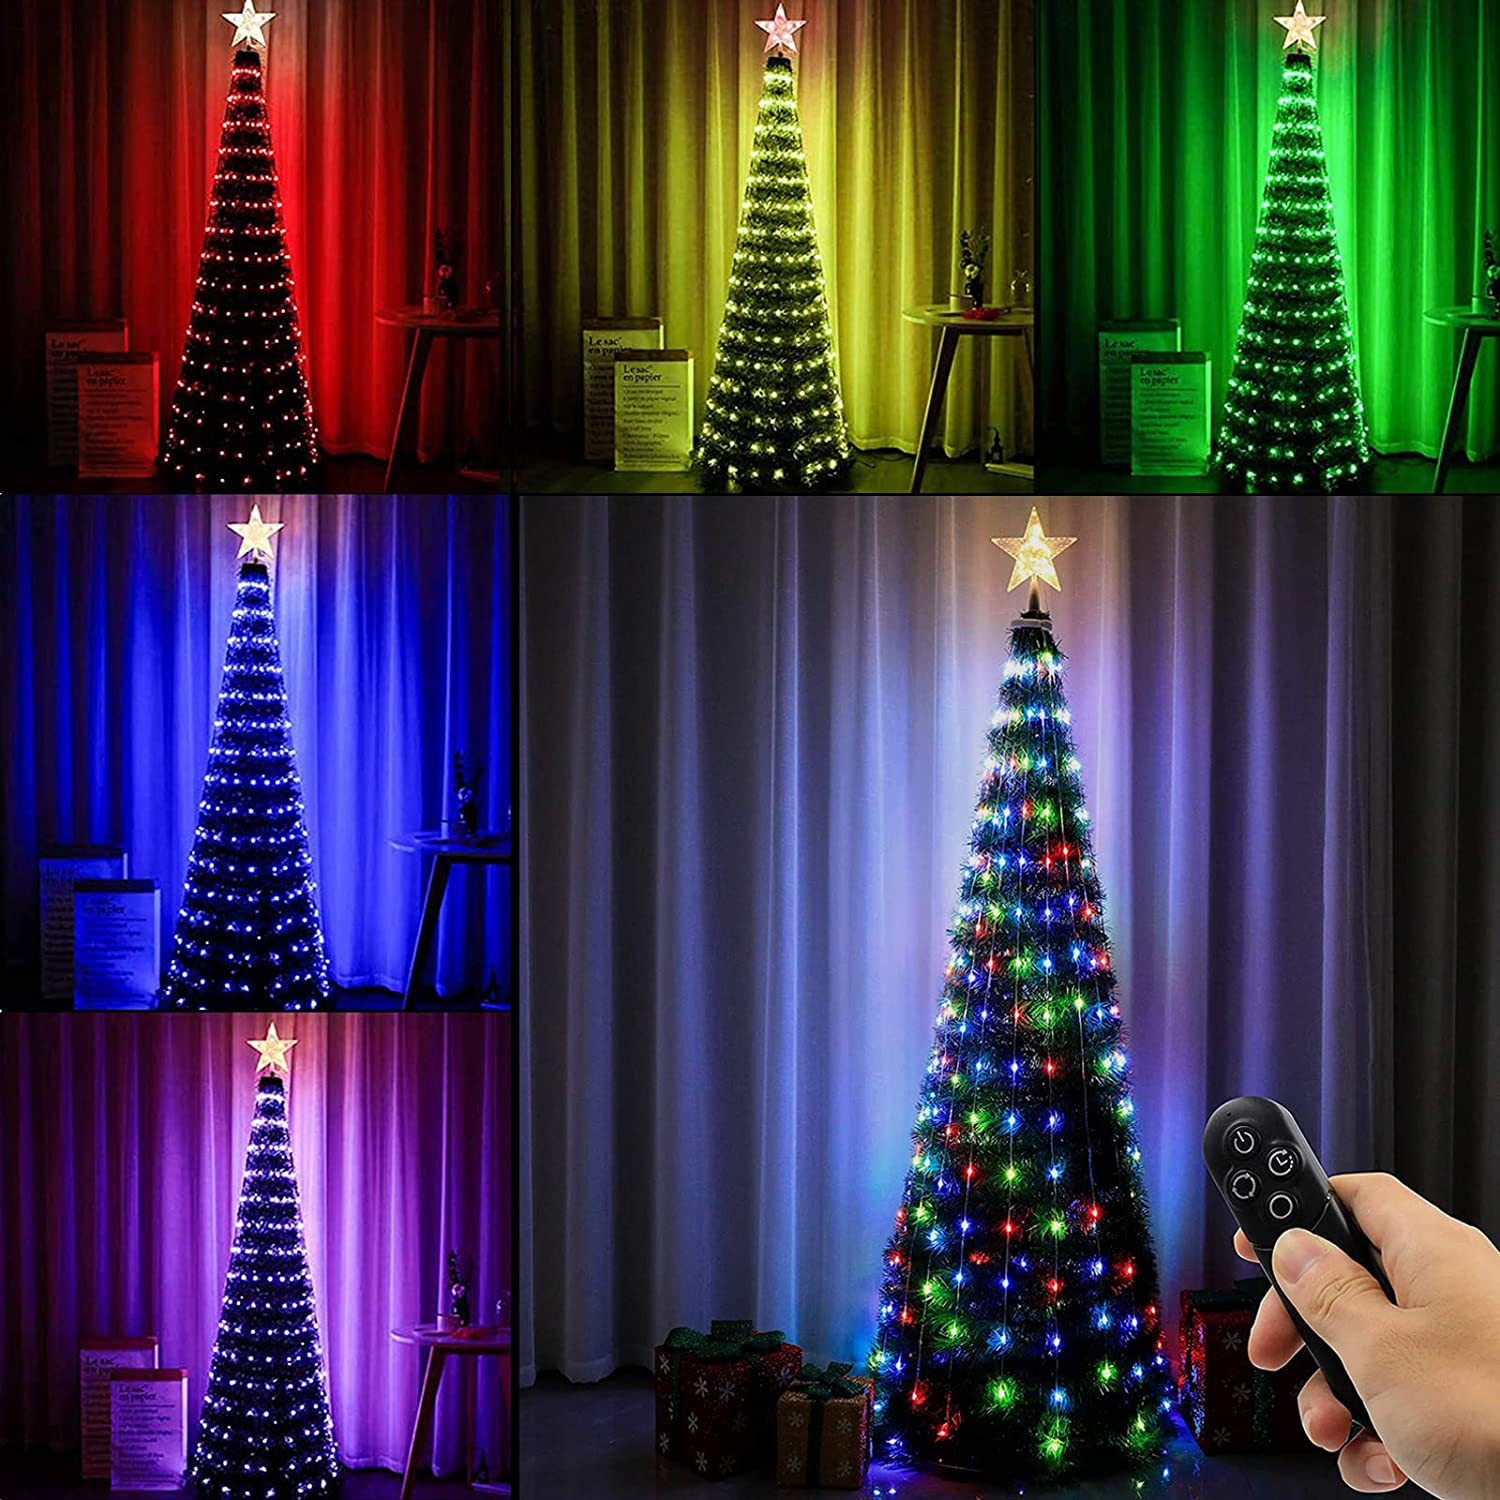 Joomer Christmas Tree with Lights, 4ft Artificial Collapsible Christmas Tree with Star Tree Topper and 186 LED Color Changing Lights, 18 Lighting Modes, Remote Control & Timer Function, Easy Assembly